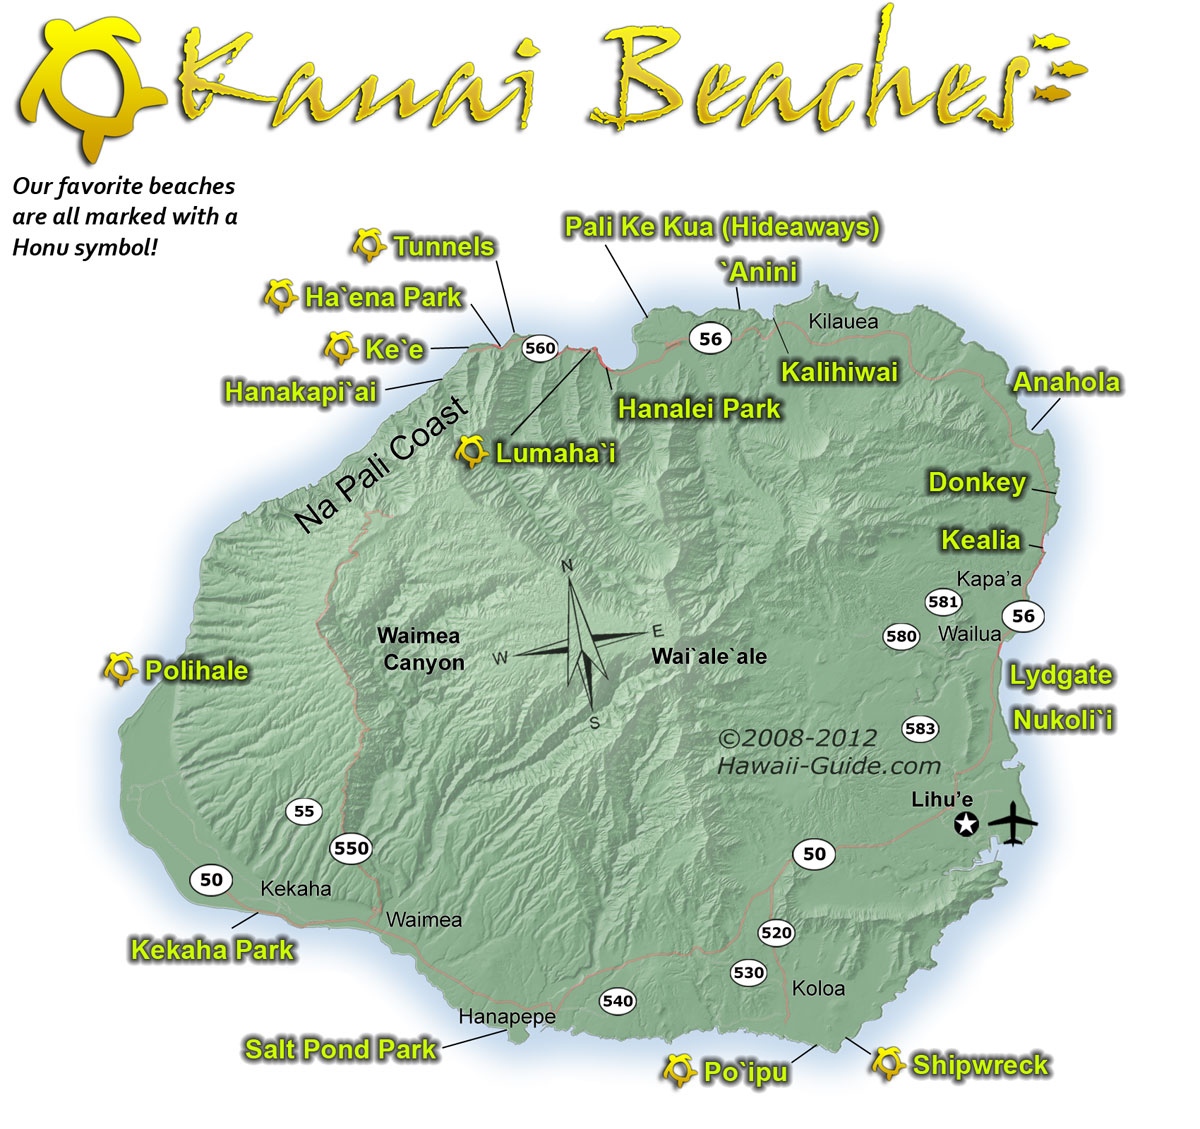 Kauai Beach: Kauai-Beach-Map.jpg 1,200×1,129 Pixels